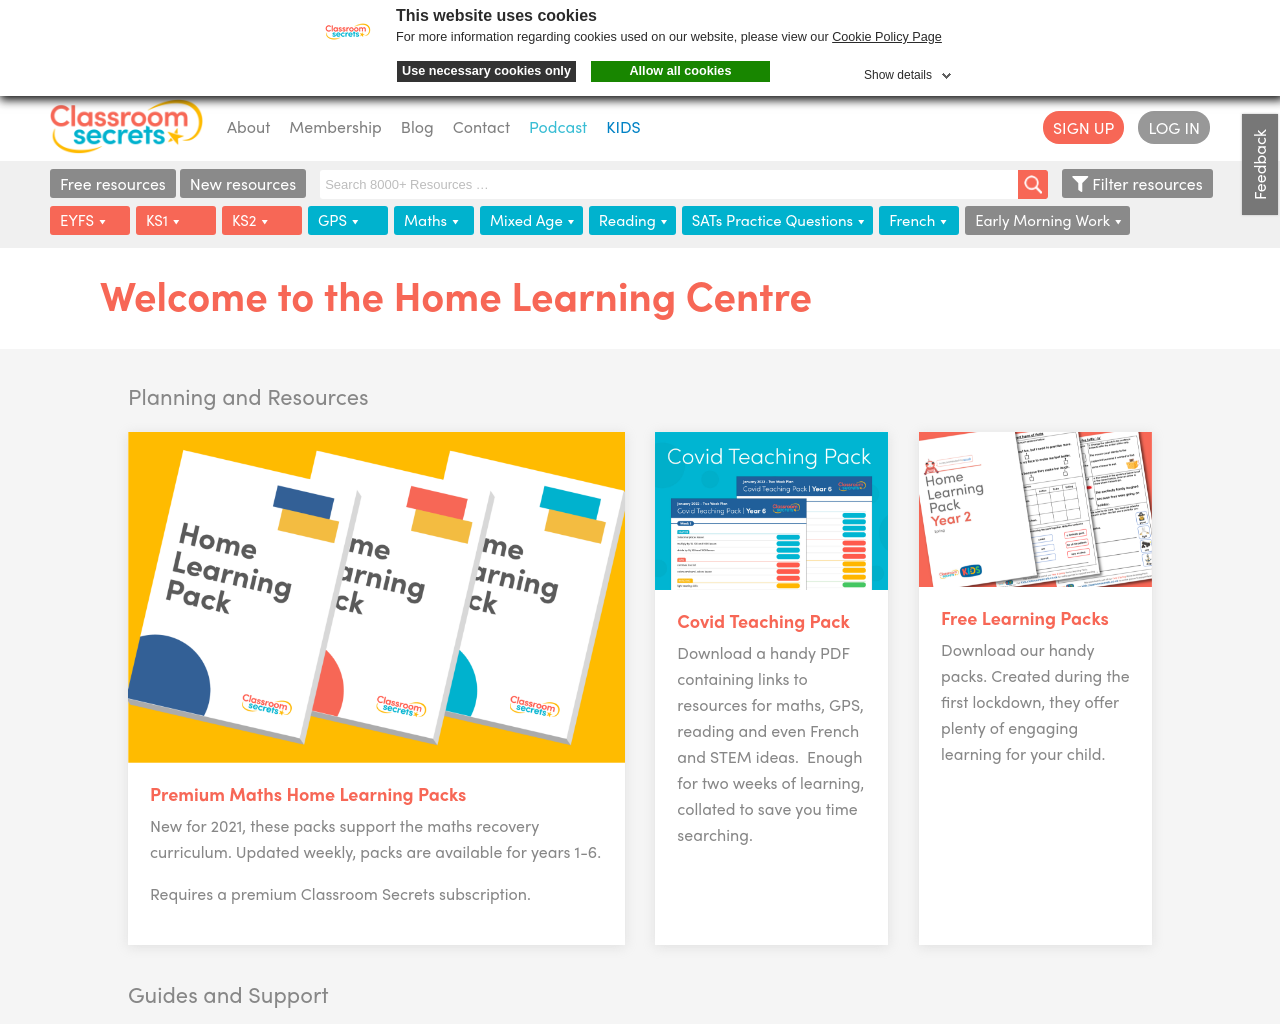 Support for Home Learning